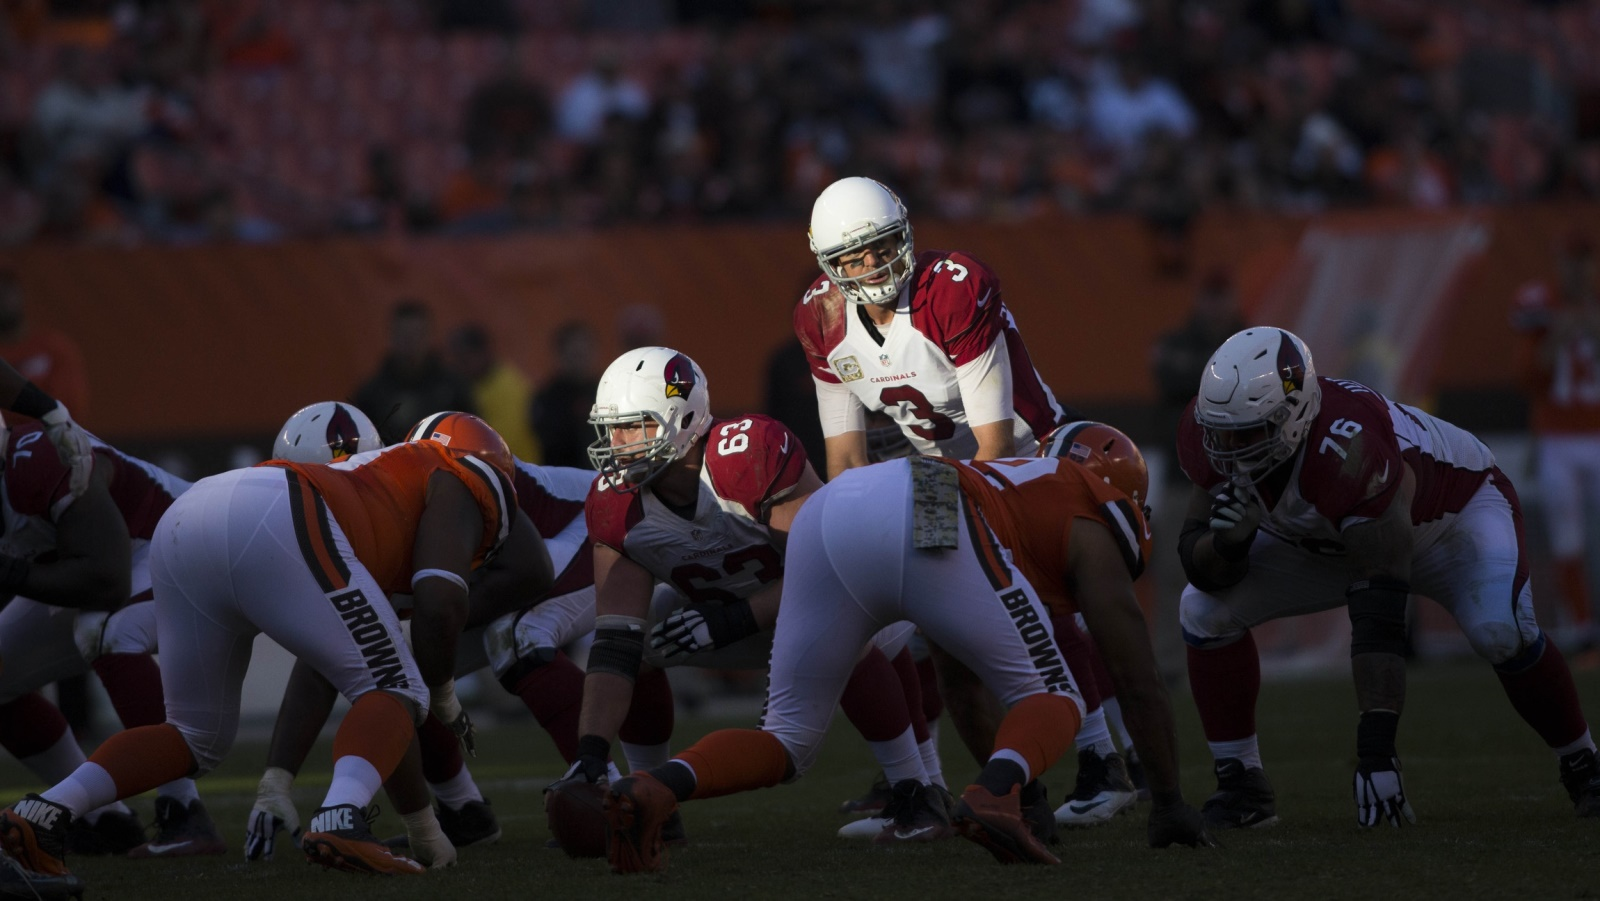 Cardinals emerged from dark first half vs. Browns